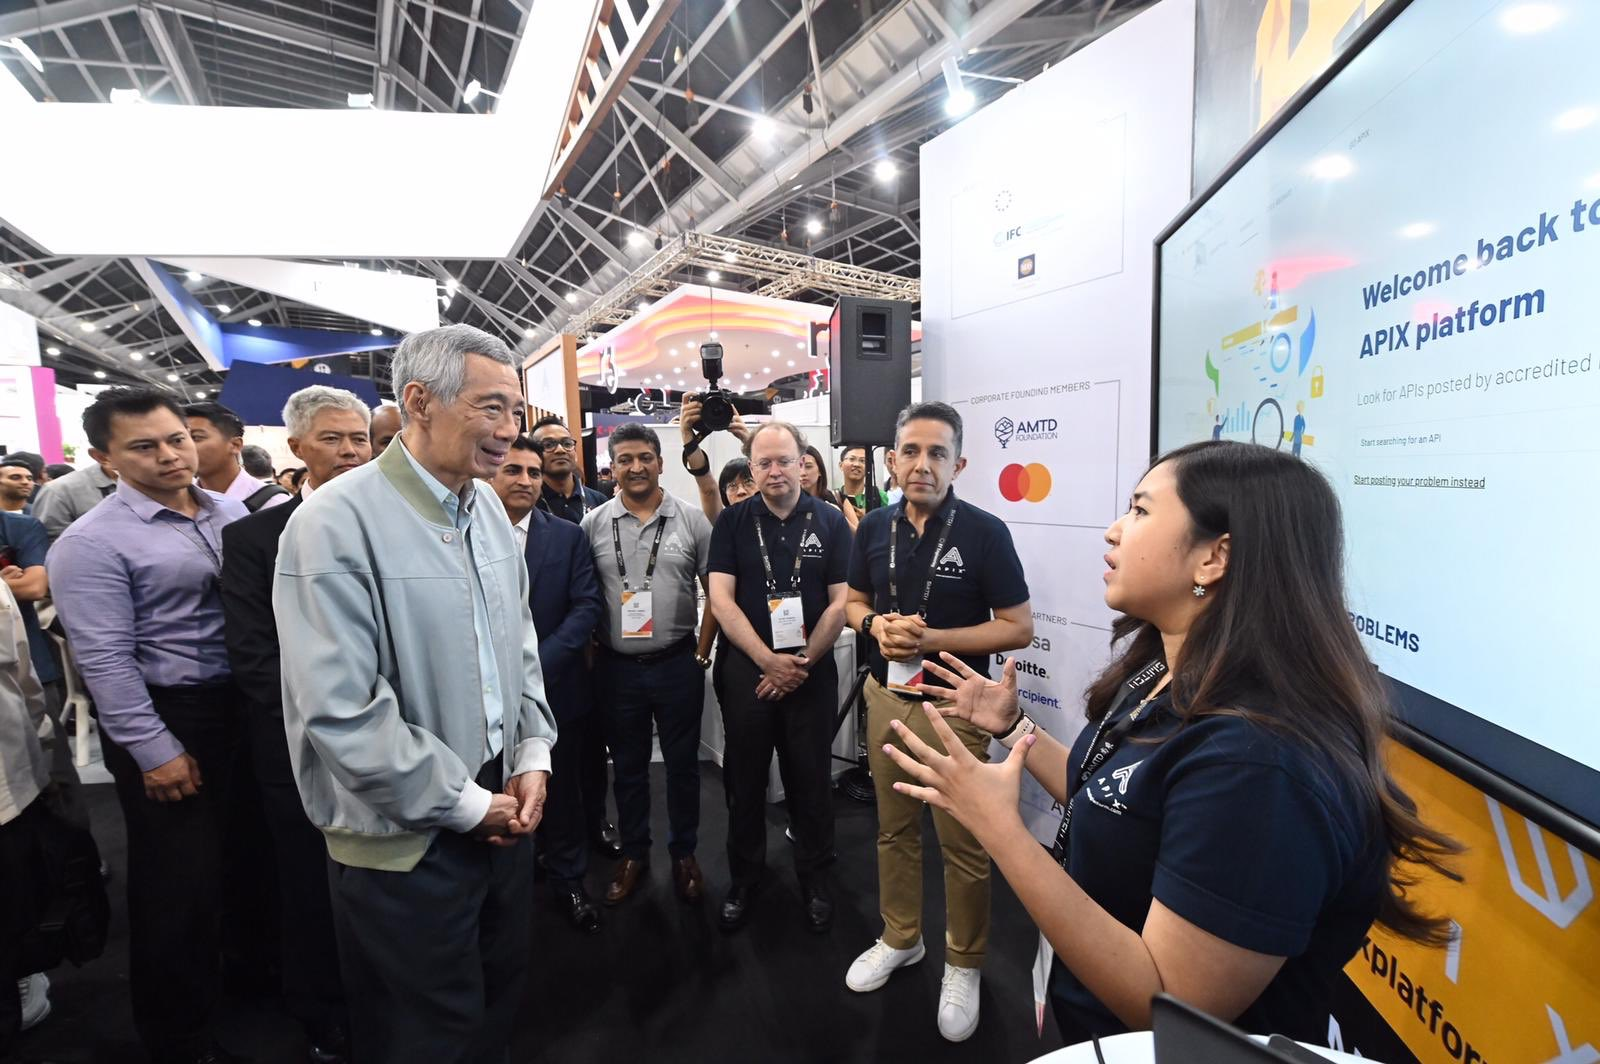 Singapore Prime Minister Lee Hsien Loong at the Singapore FinTech Festival 2019. Photo courtesy: Twitter/@sgfintechfest